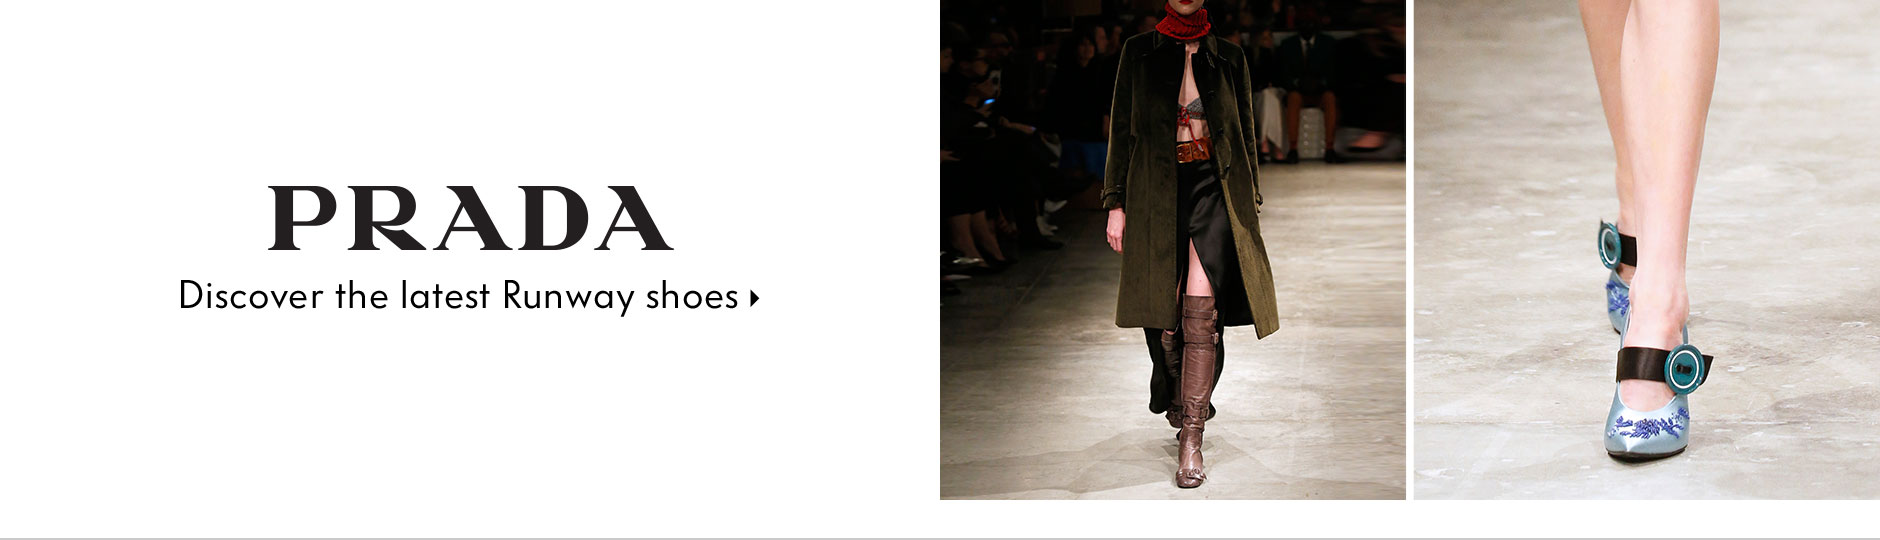 Prada - Discover the latest Runway shoes